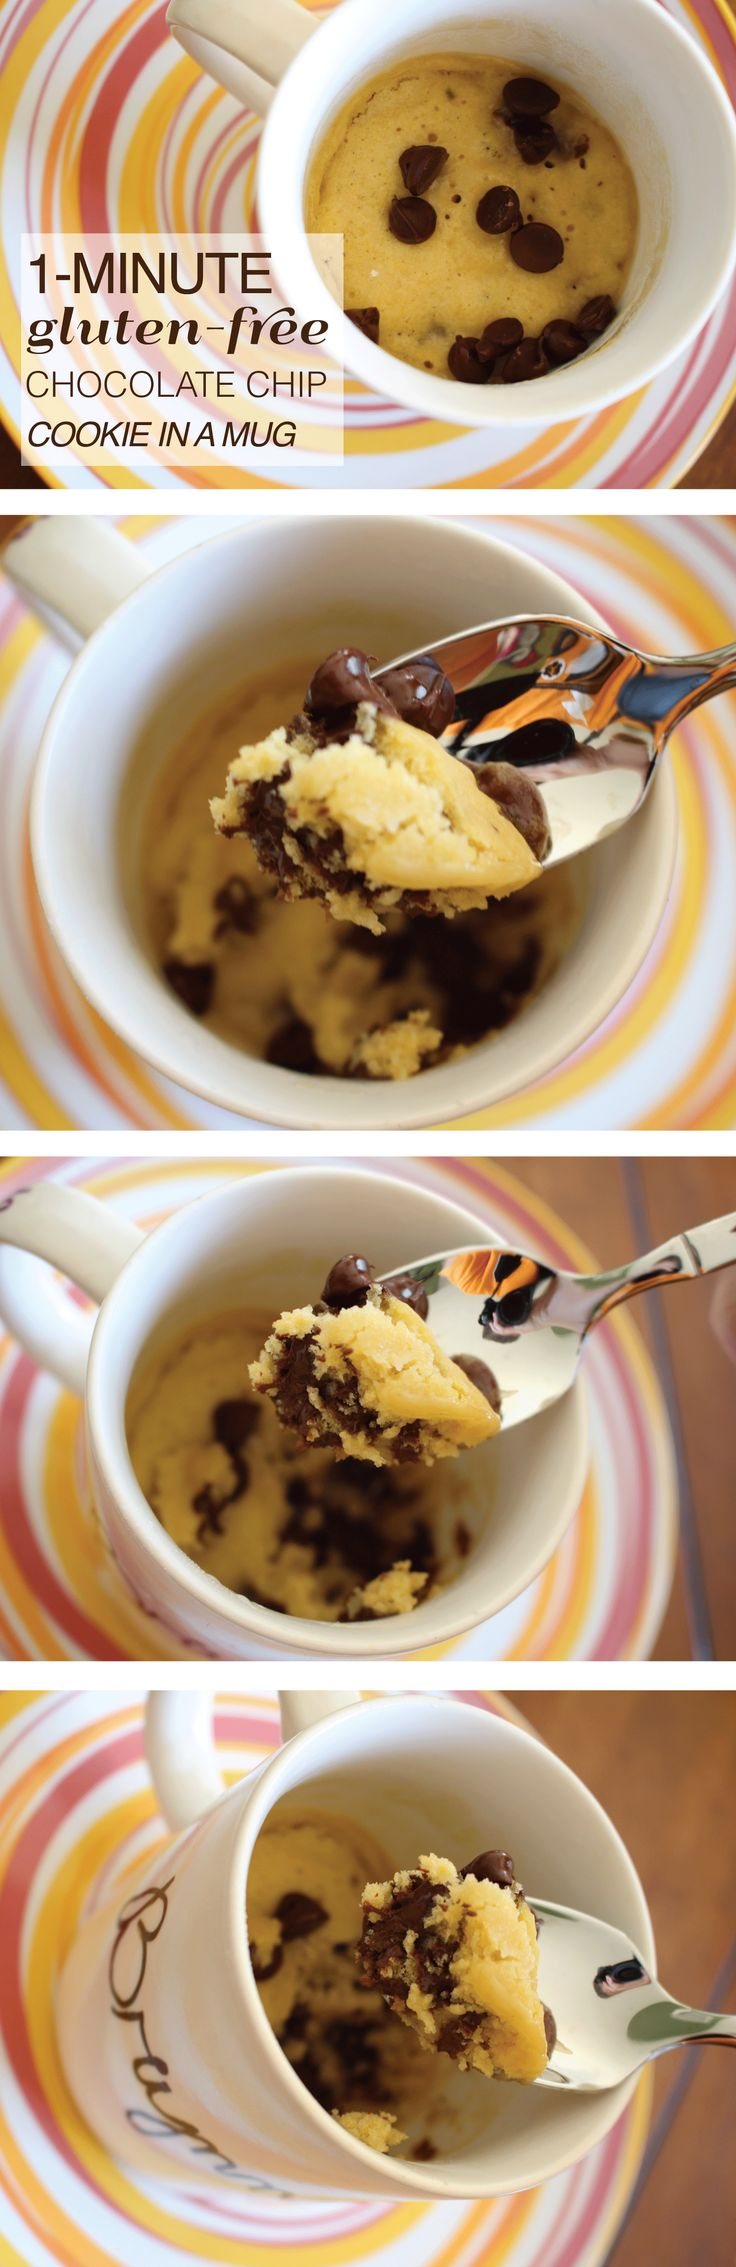 1-Minute Gluten-Free Chocolate Chip Cookie in a Mug Recipe